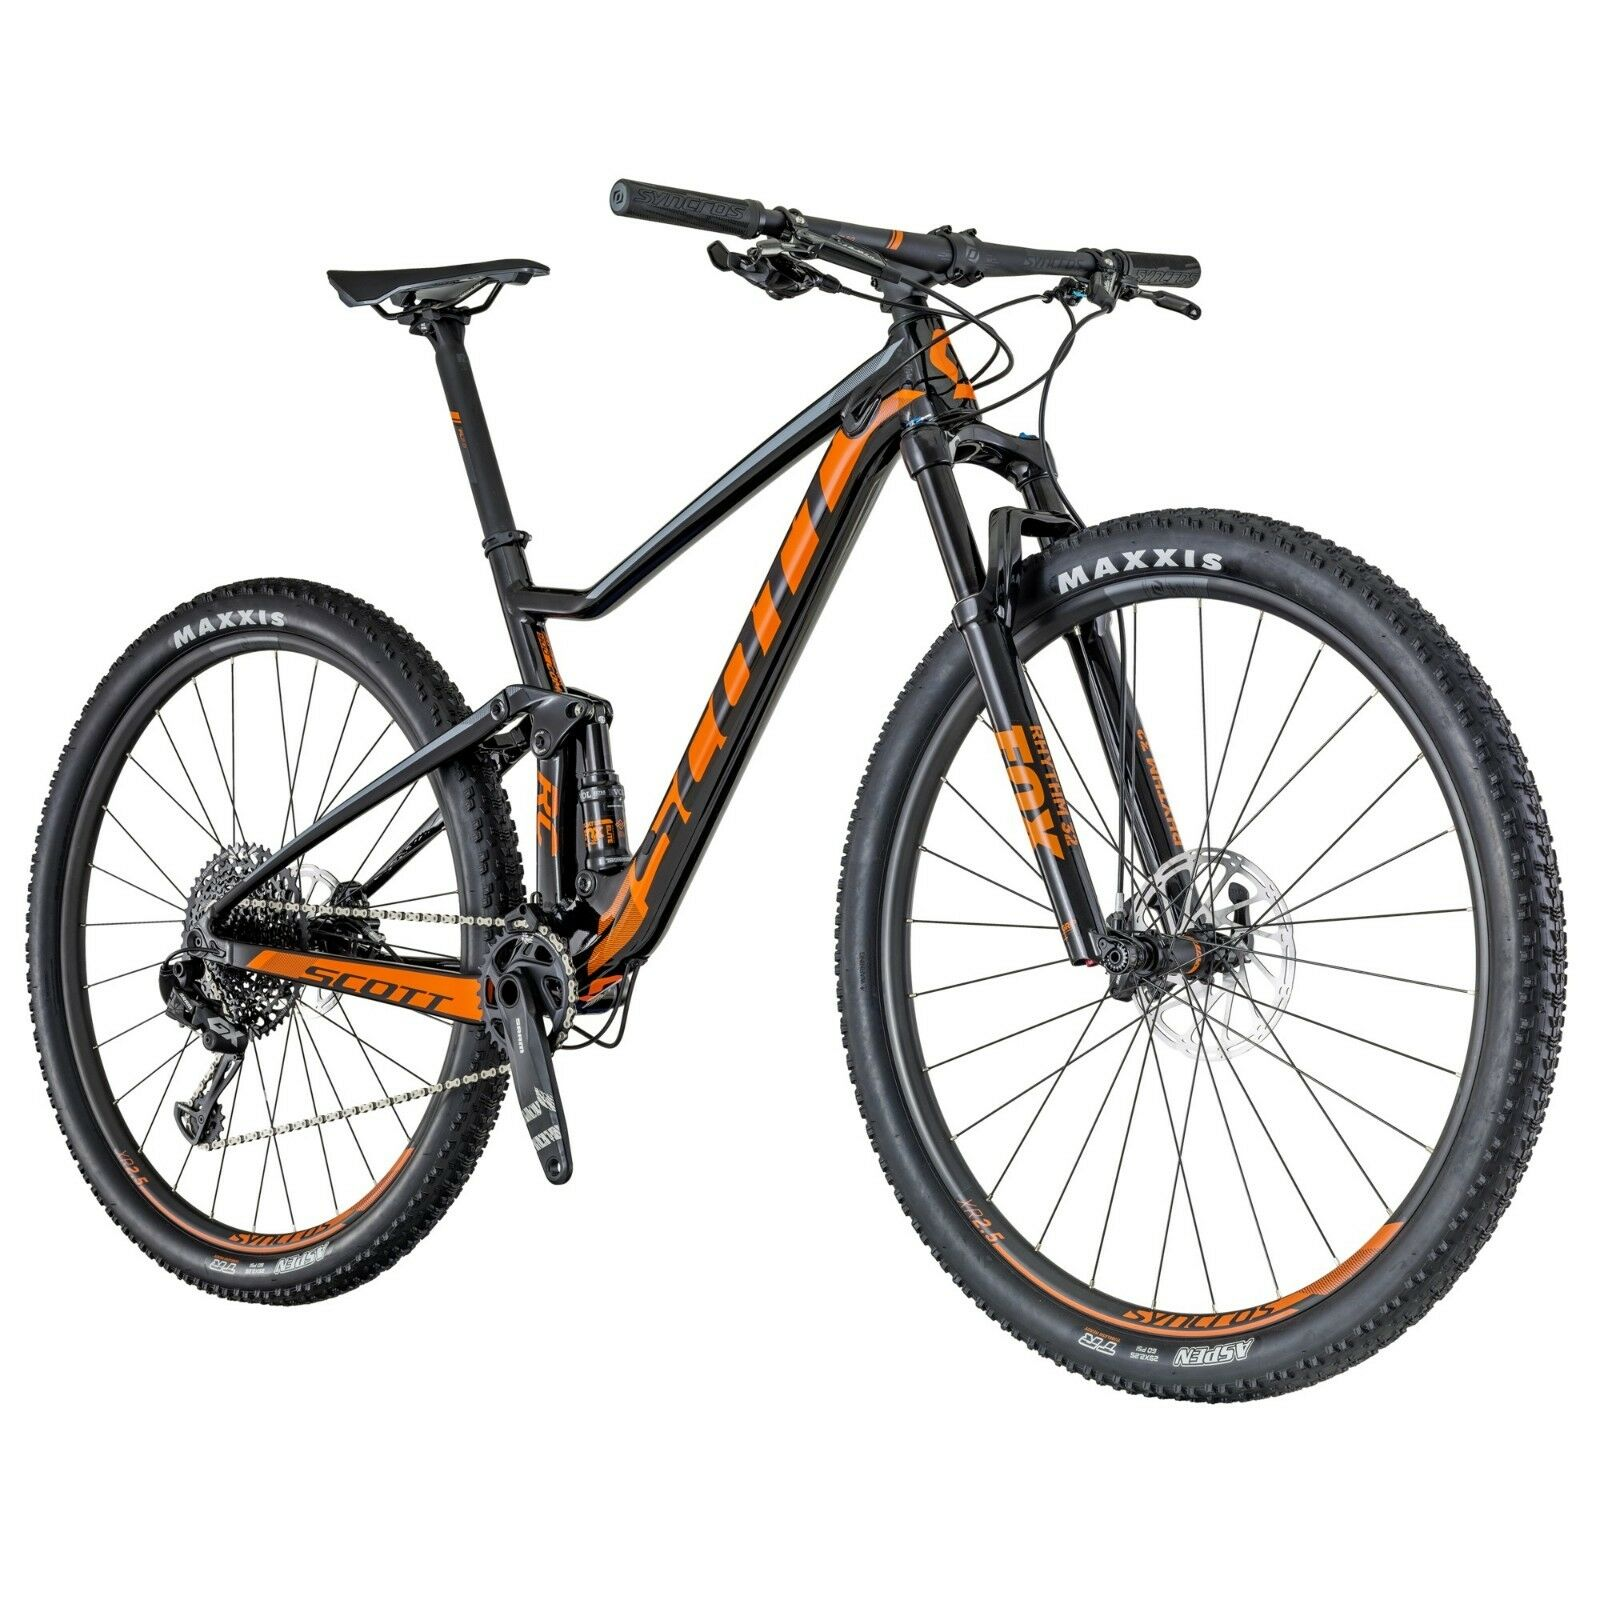 2018 Scott Spark 900 RC Comp, Size M, Full Suspension MTB *NEW*